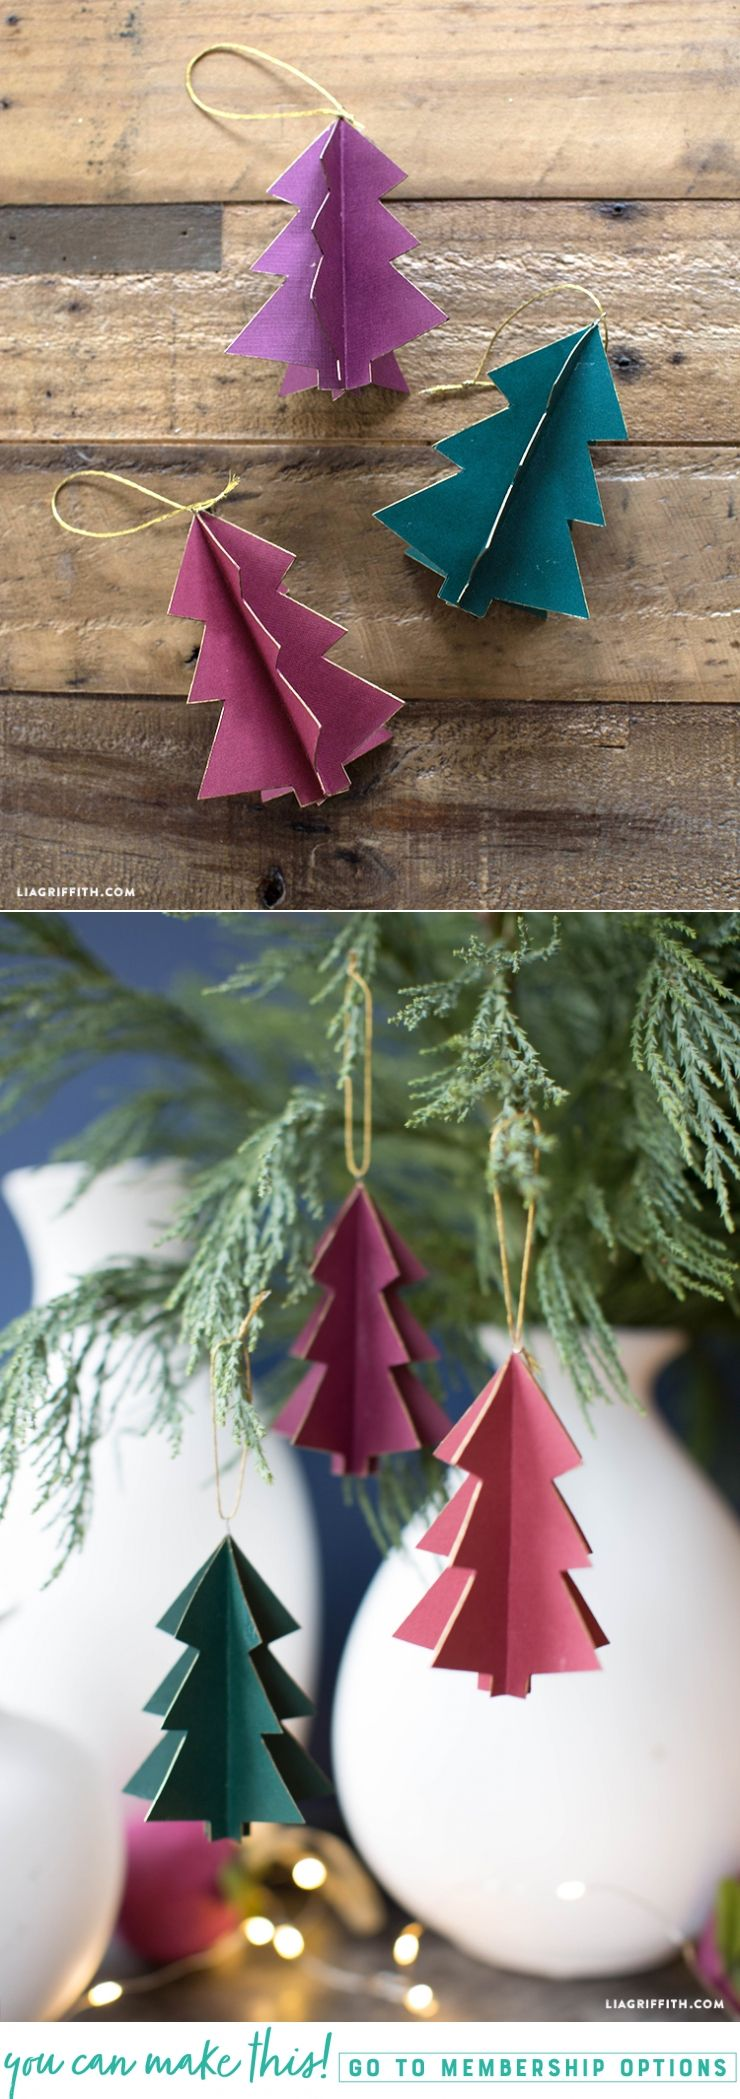 3d Paper Tree Ornaments Lia Griffith Www Liagriffith Com Diyornaments Diychristmas Diyholiday Di Paper Christmas Tree Christmas Tree Crafts Xmas Crafts